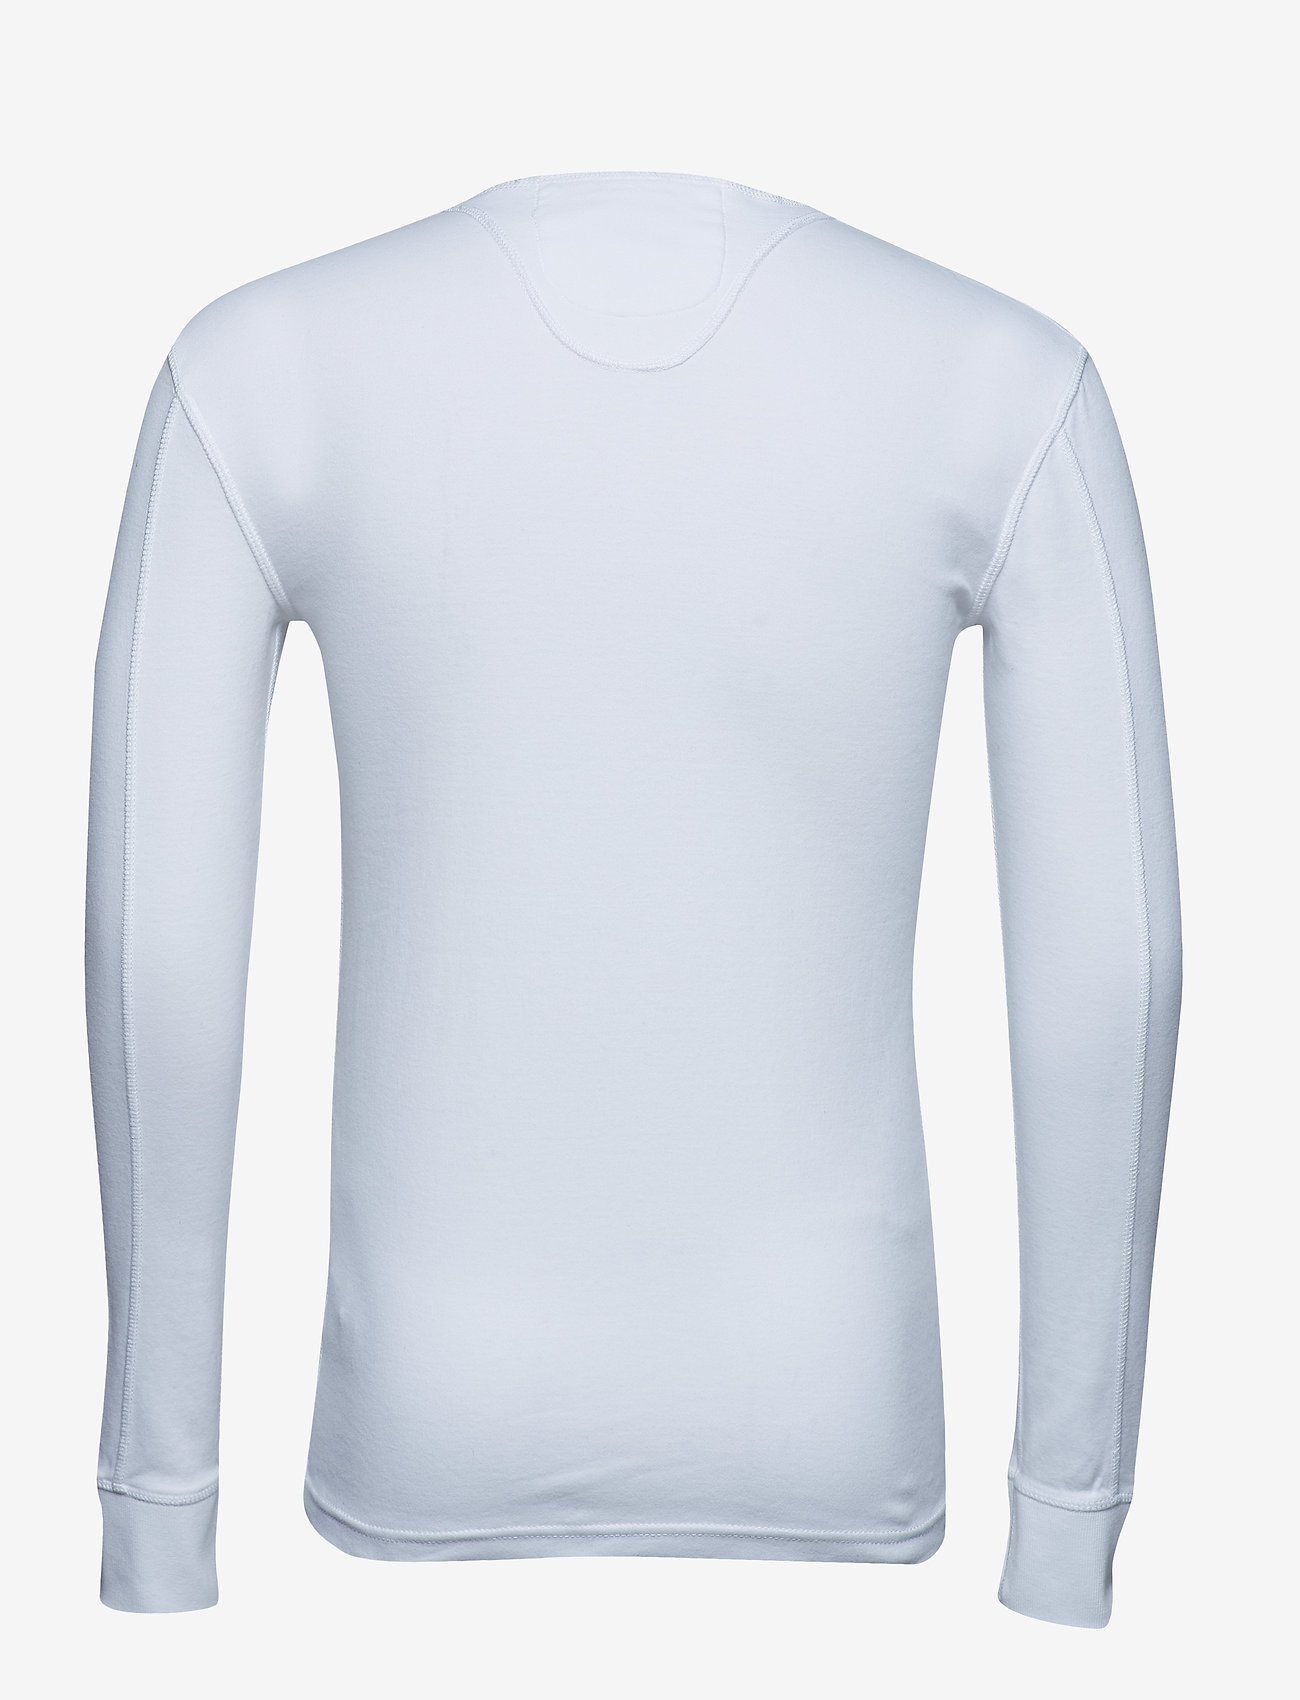 Heritage L/s Grandad (Optic White) (374.25 kr) - Superdry